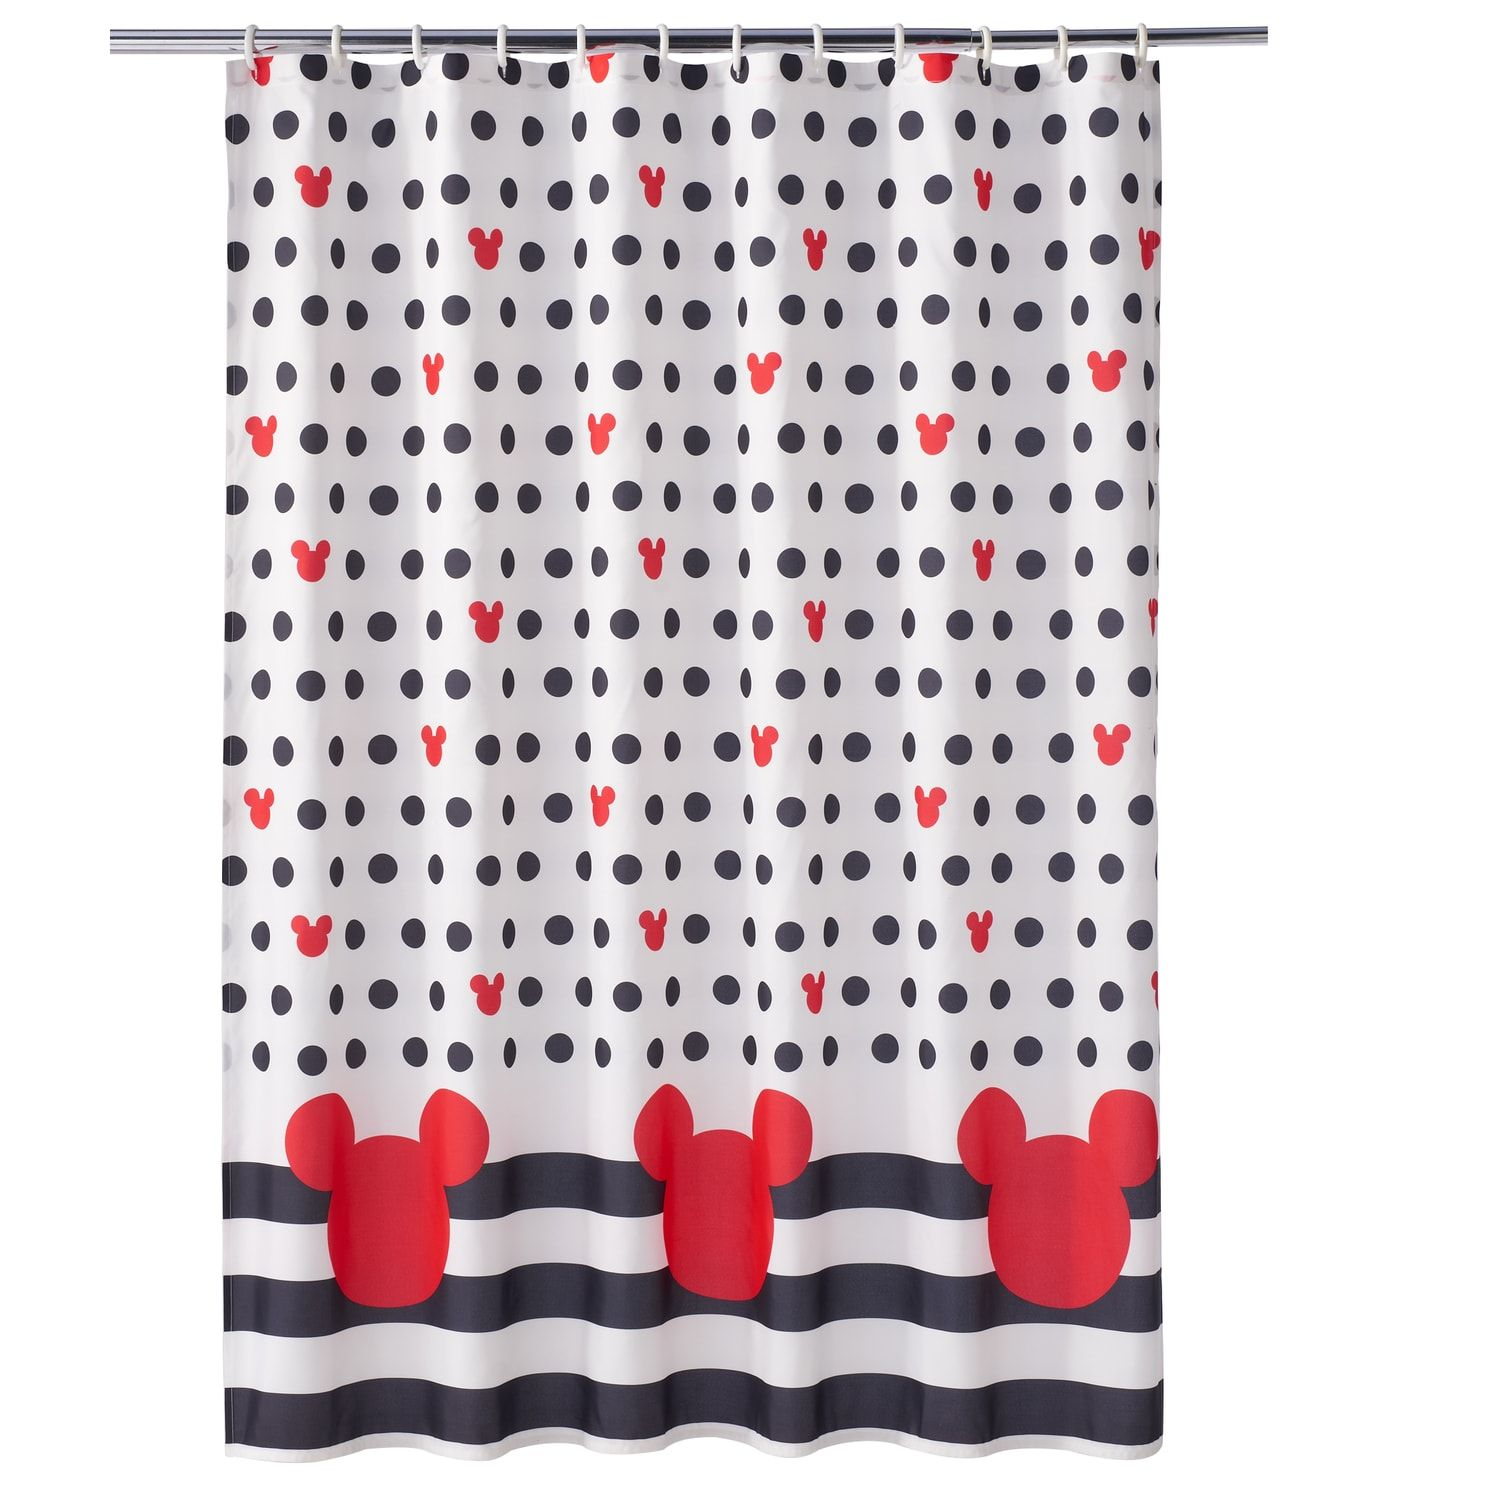 Disney S Mickey Mouse Shower Curtain Mickey Mouse Shower Curtain